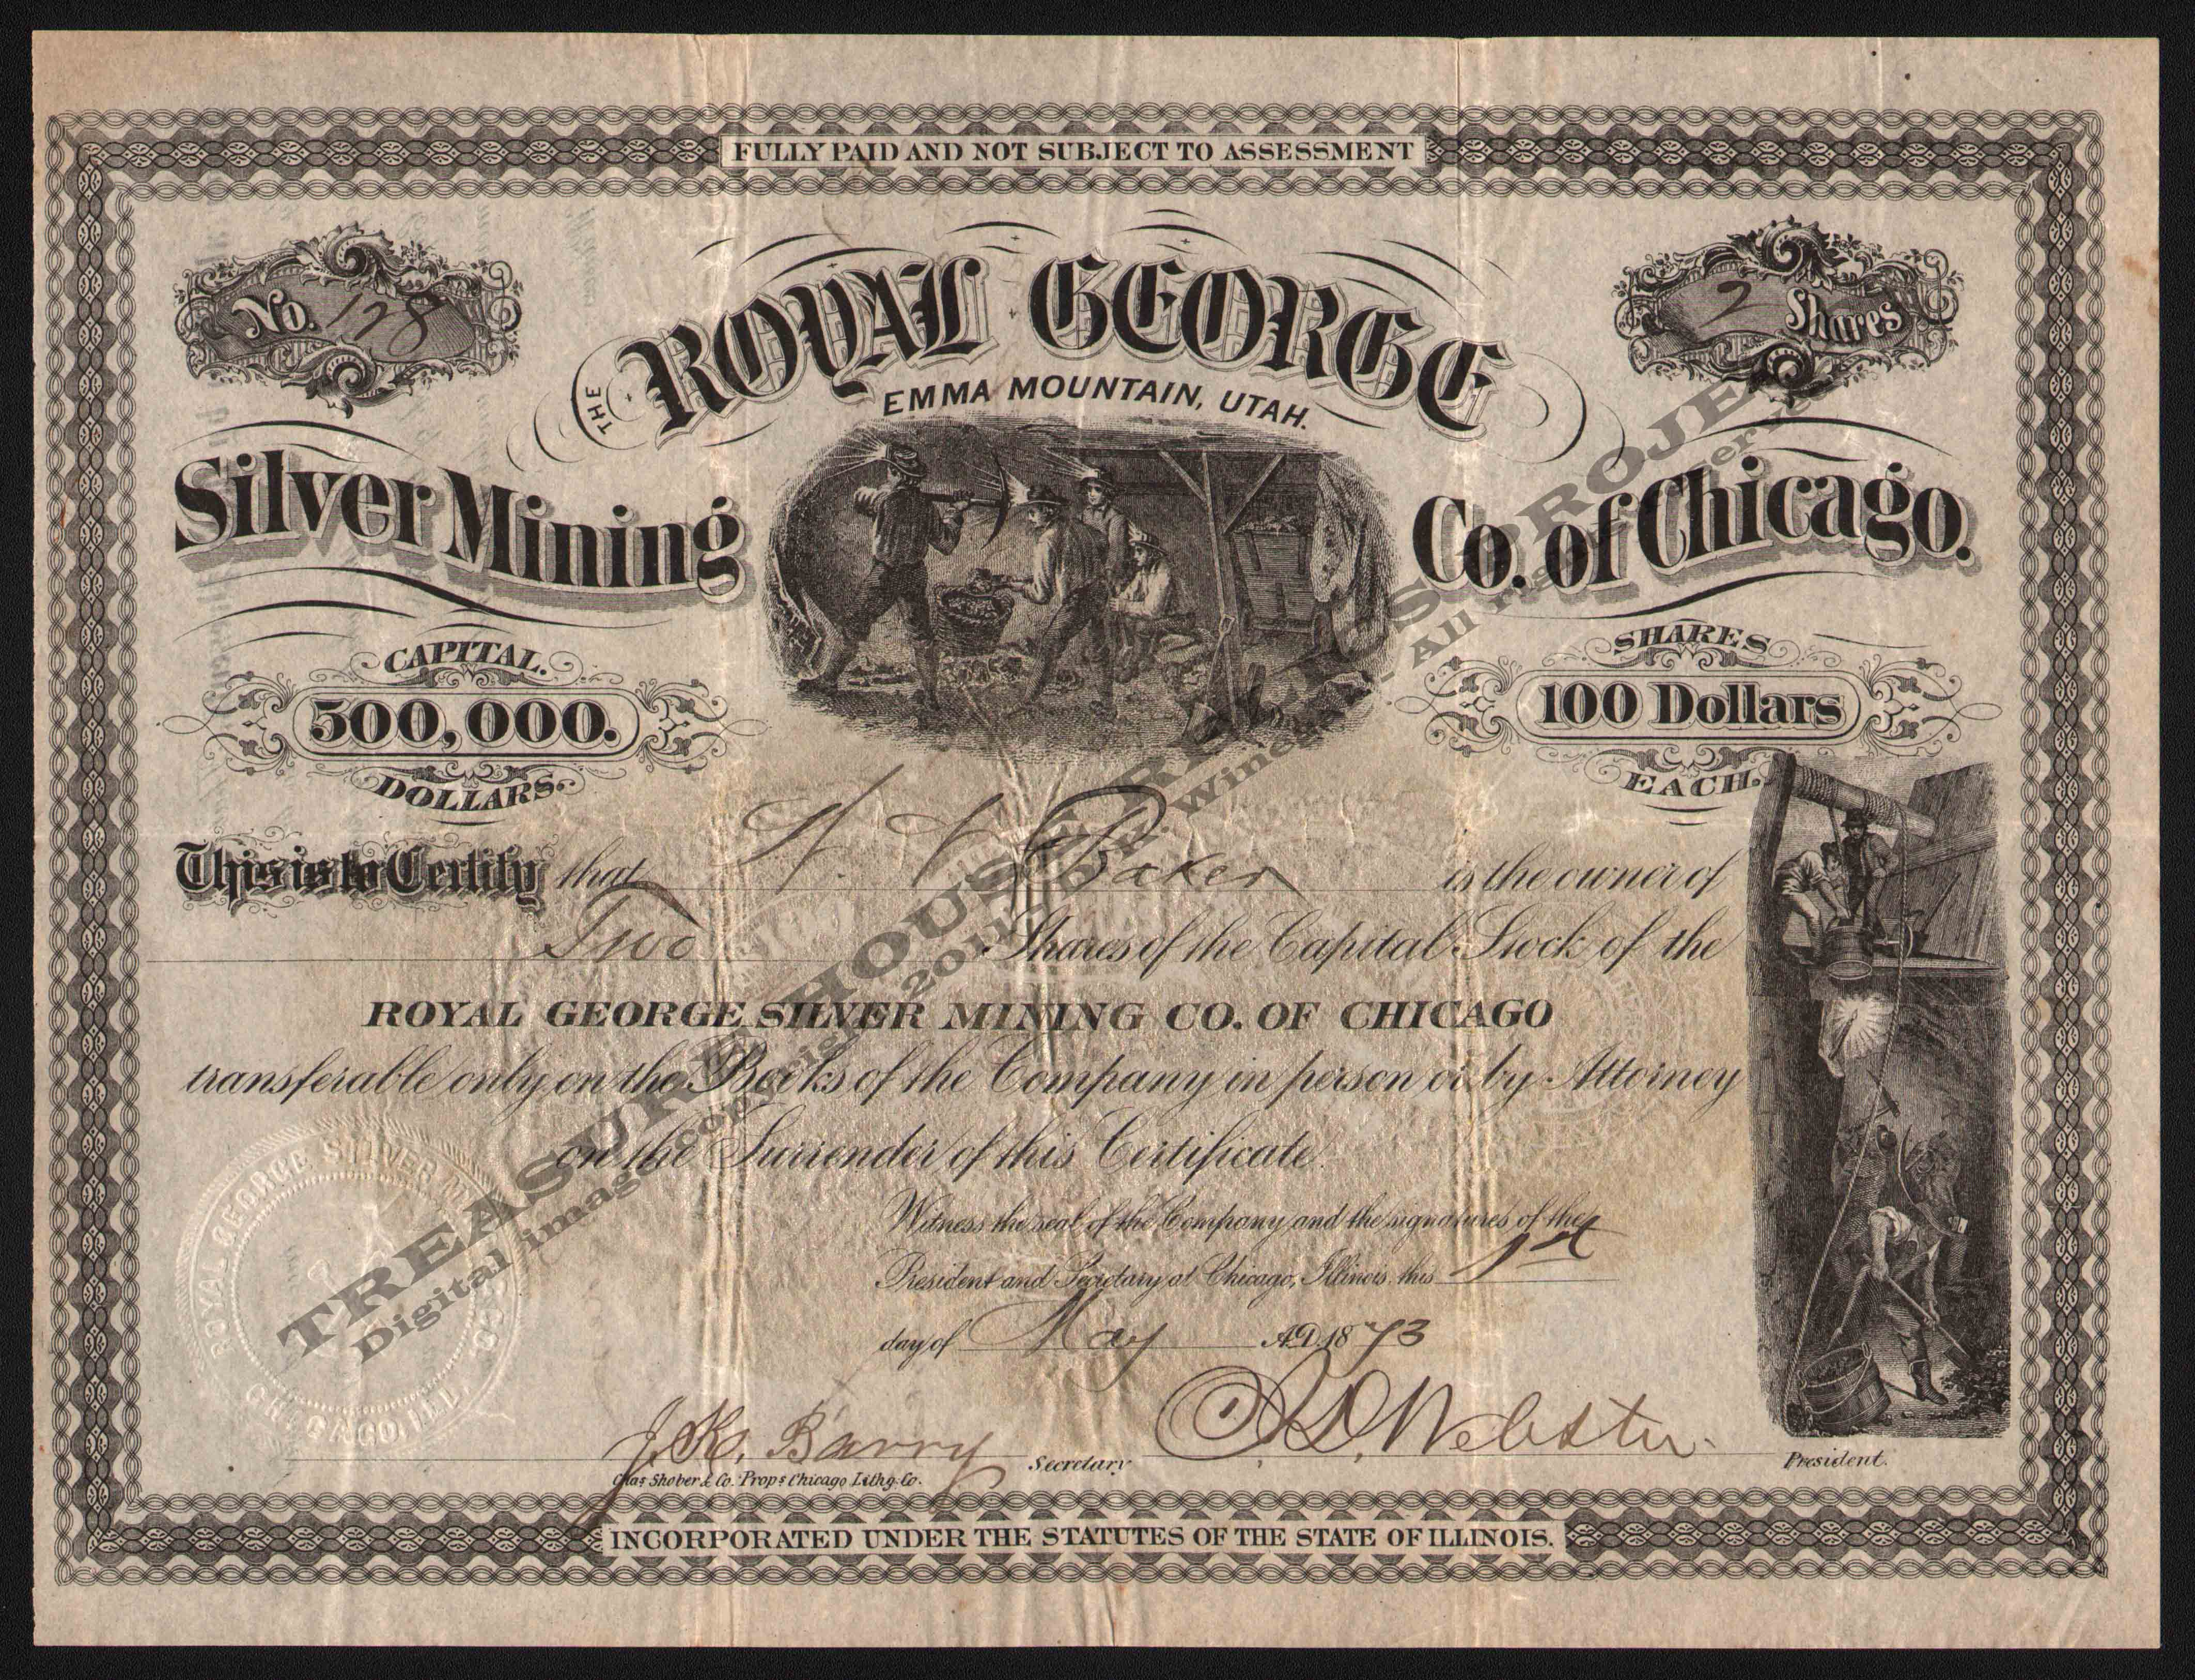 ROYAL_GEORGE_SILVER_MINING_COMPANY_128_1873_400_EMBOSS.jpg